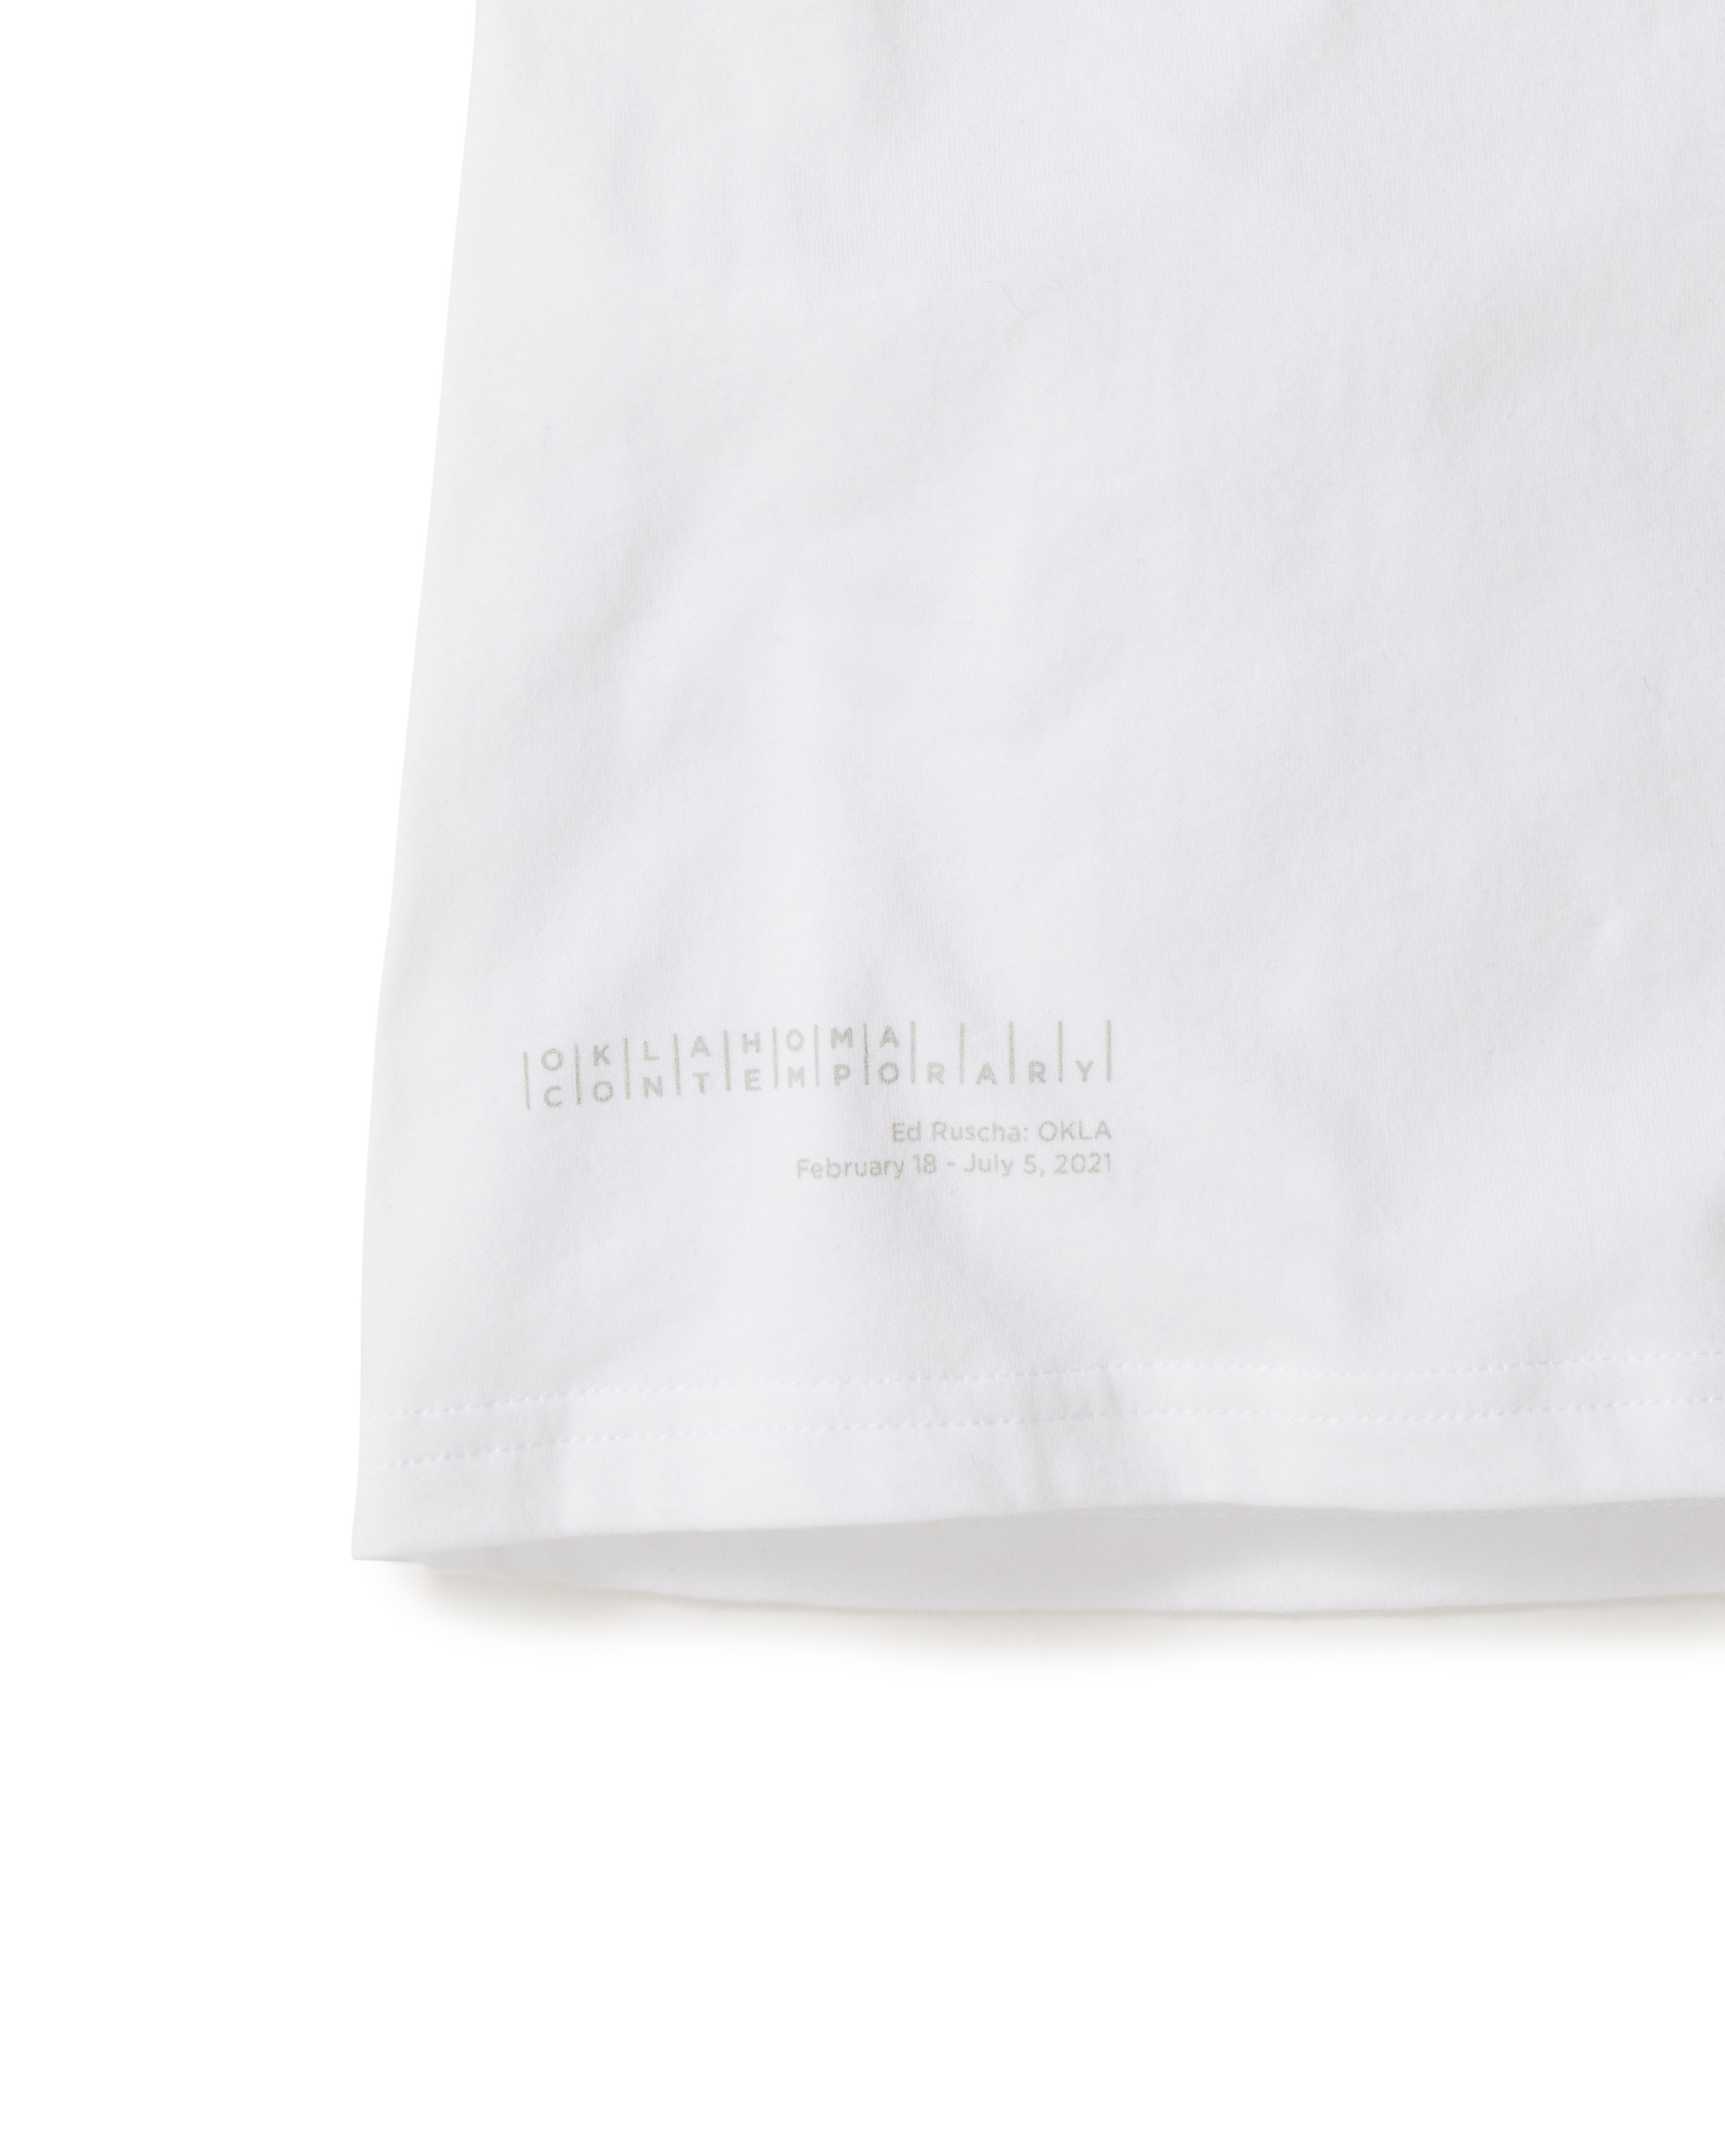 Cropped photo focusing on the lower left quadrant of a white T-shirt, depicting a logo featuring the words Oklahoma Contemporary